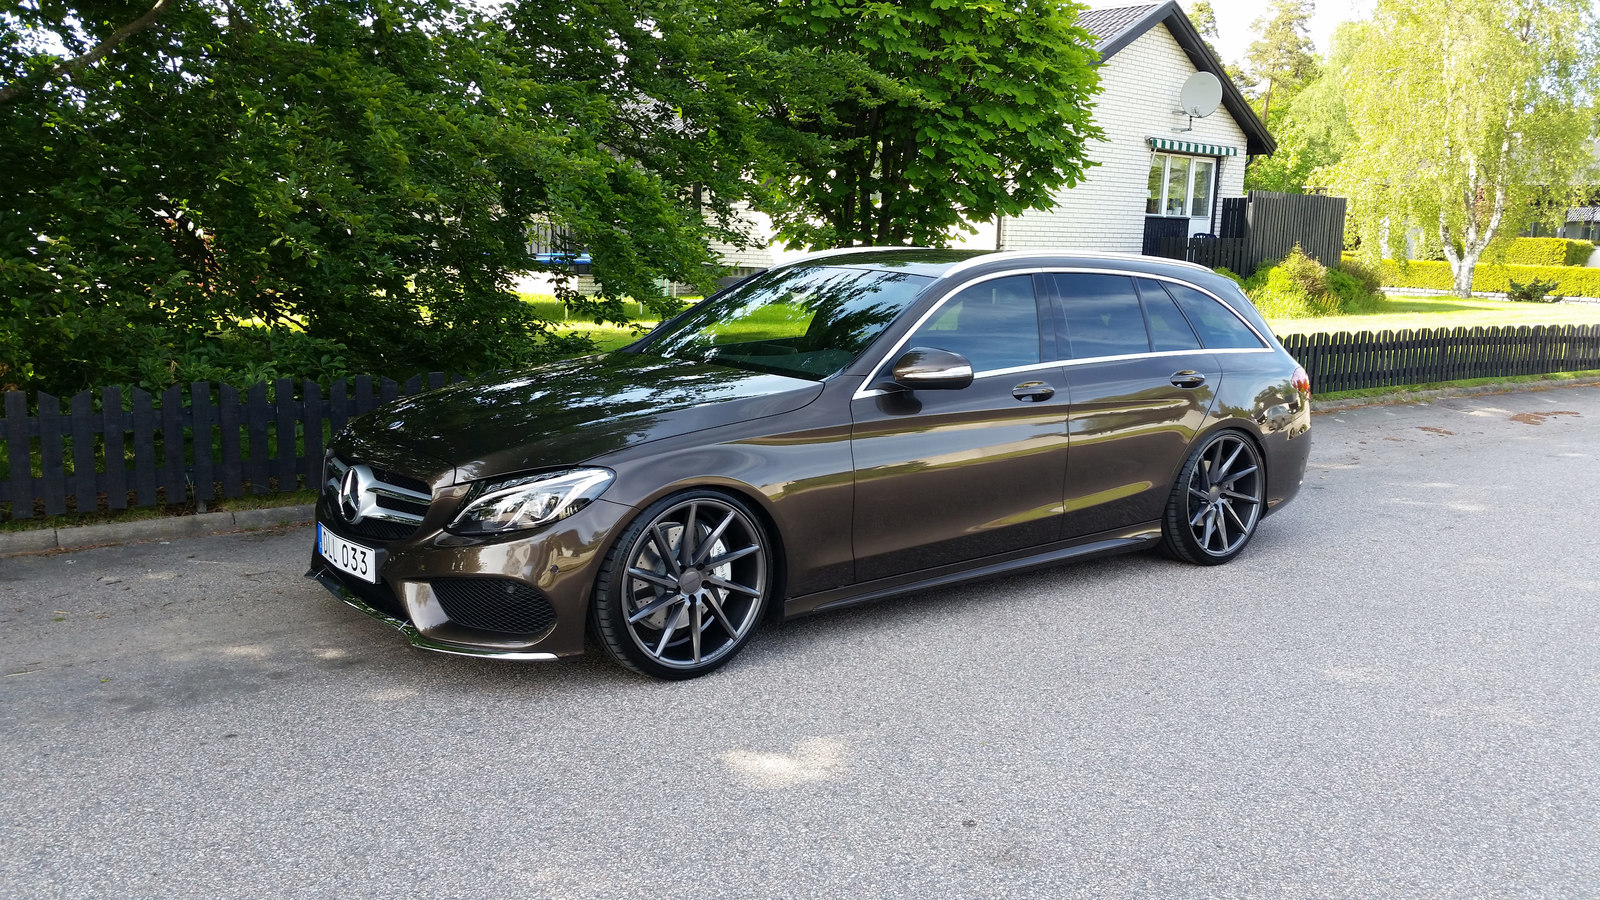 mercedes benz s205 on r20 vossen cvt rims benztuning. Black Bedroom Furniture Sets. Home Design Ideas